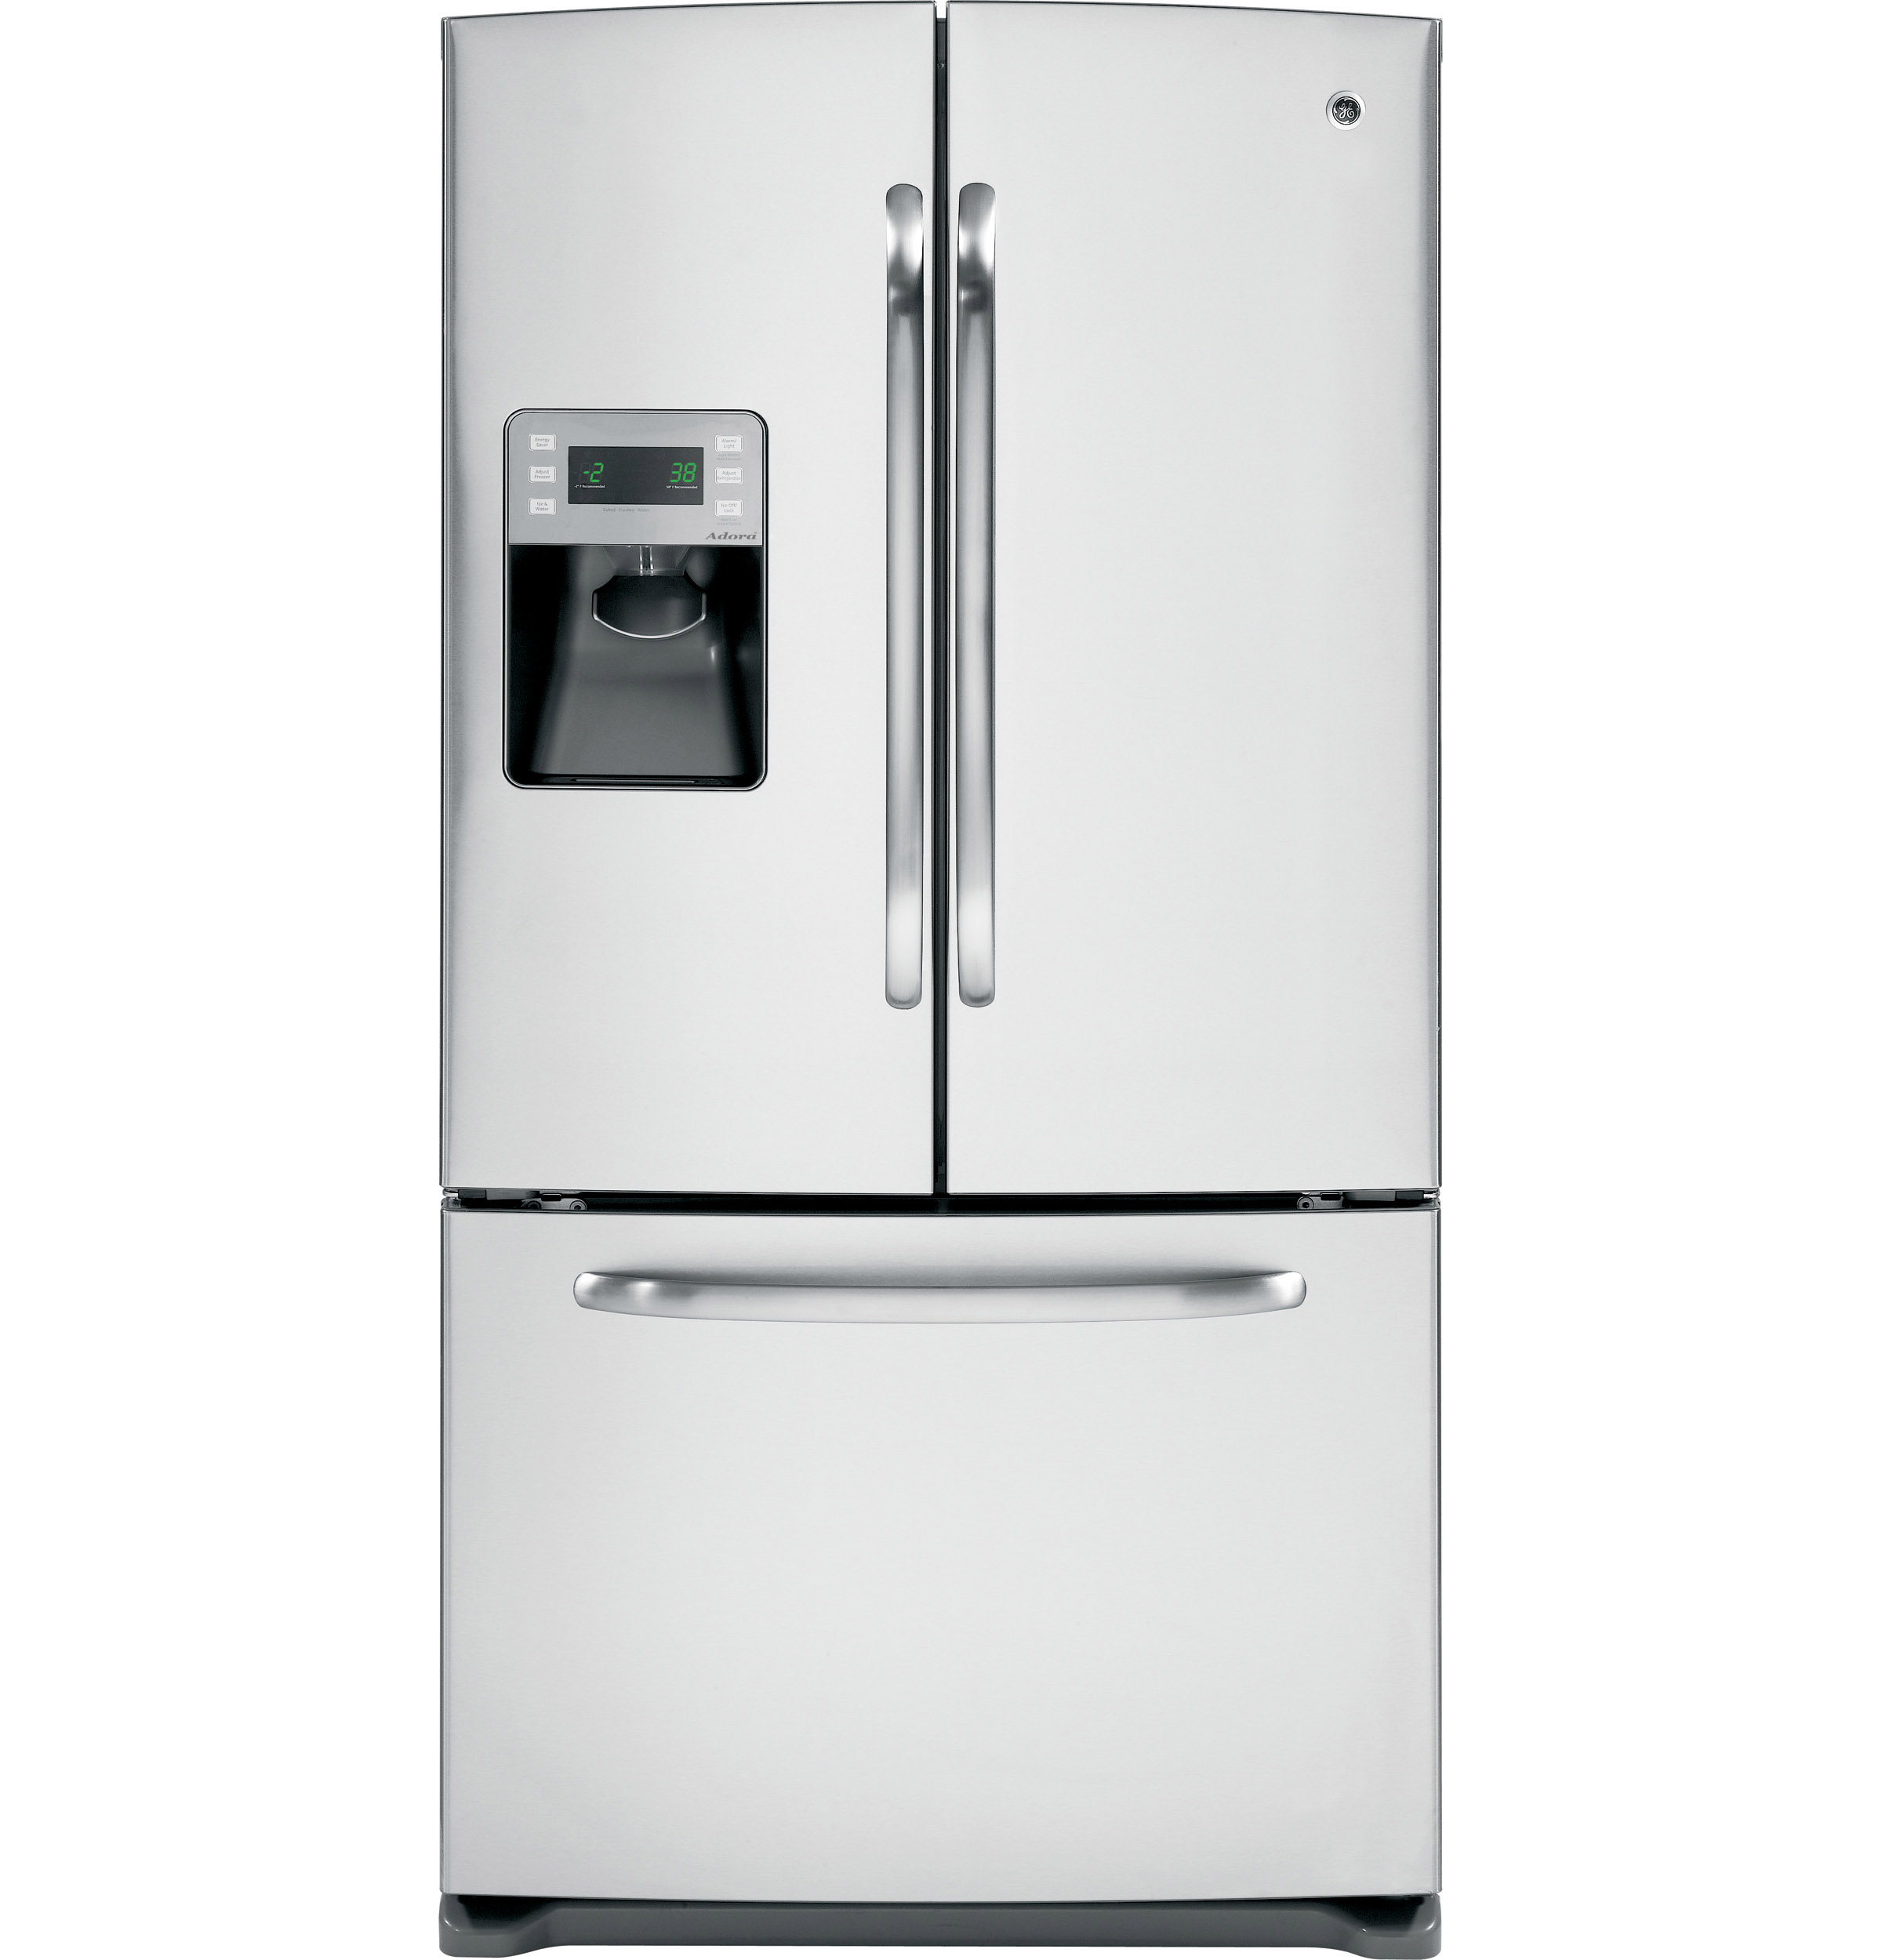 french d refrigerator cu sale stainless wid steel ft jsp counter sharpen hei op prod door product series profile details ge depth